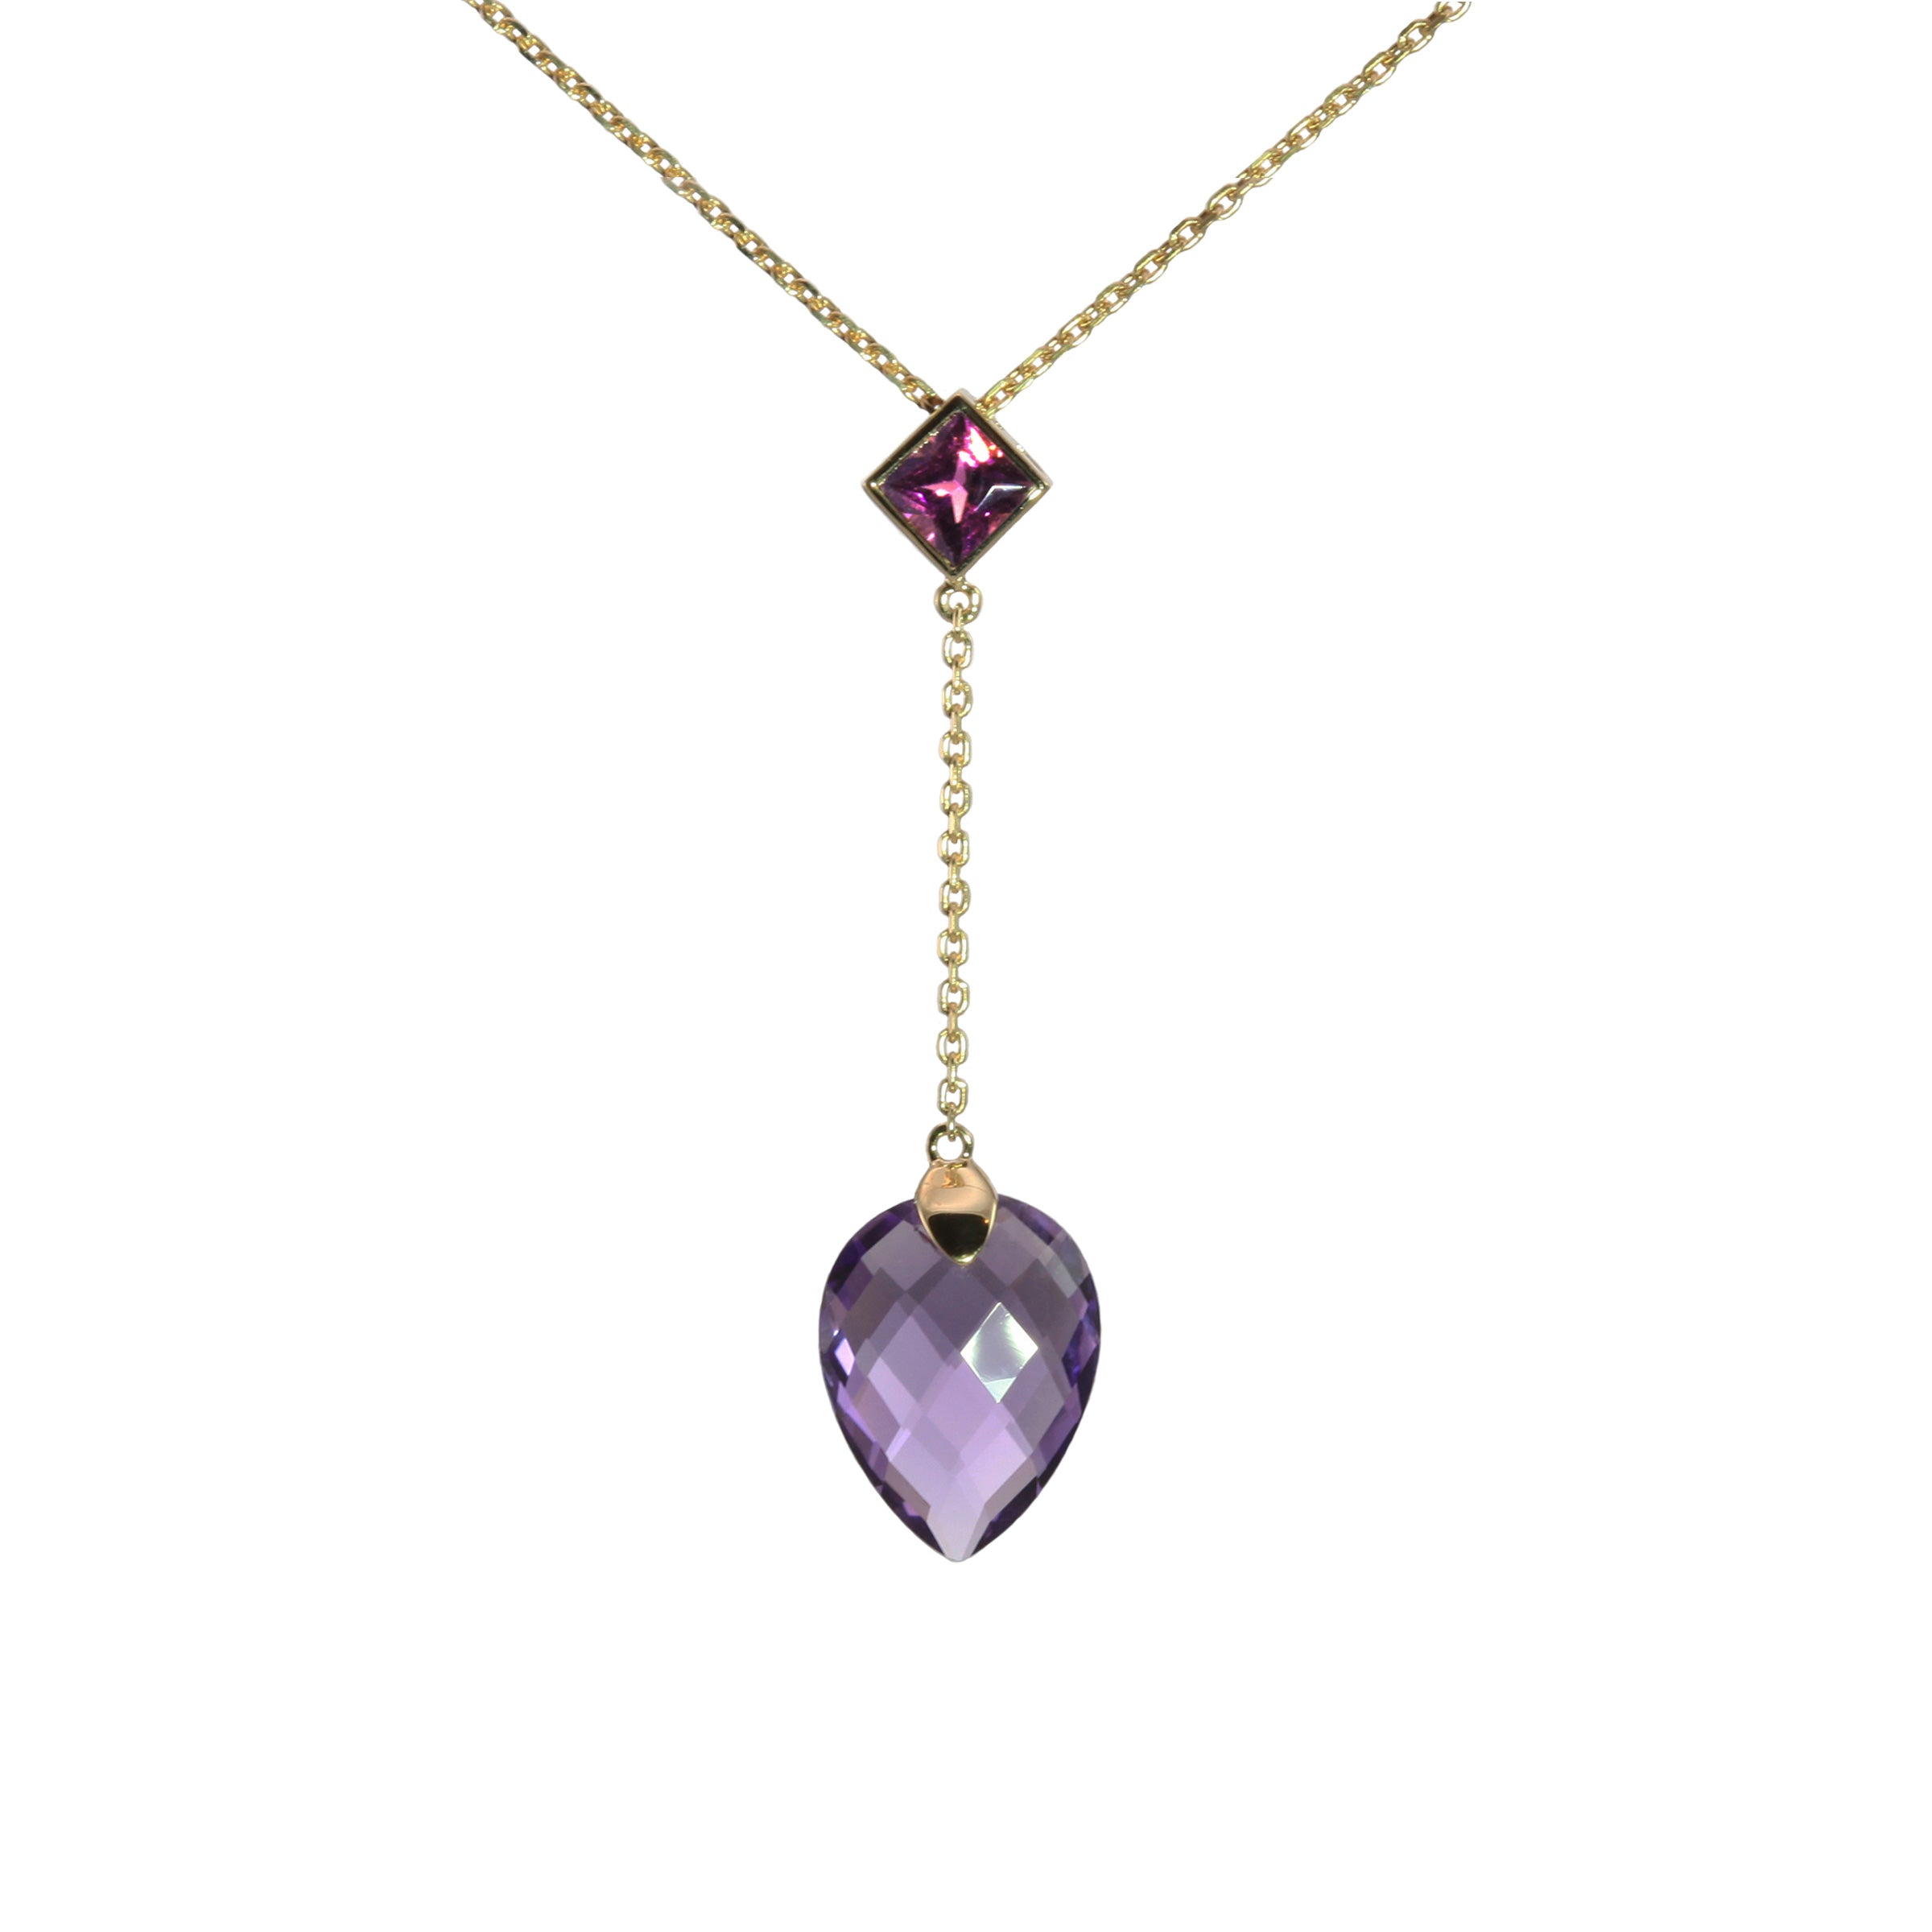 Pear Shape Amethyst Drop Pendant with Rhodolite Accent, 14K Yellow Gold